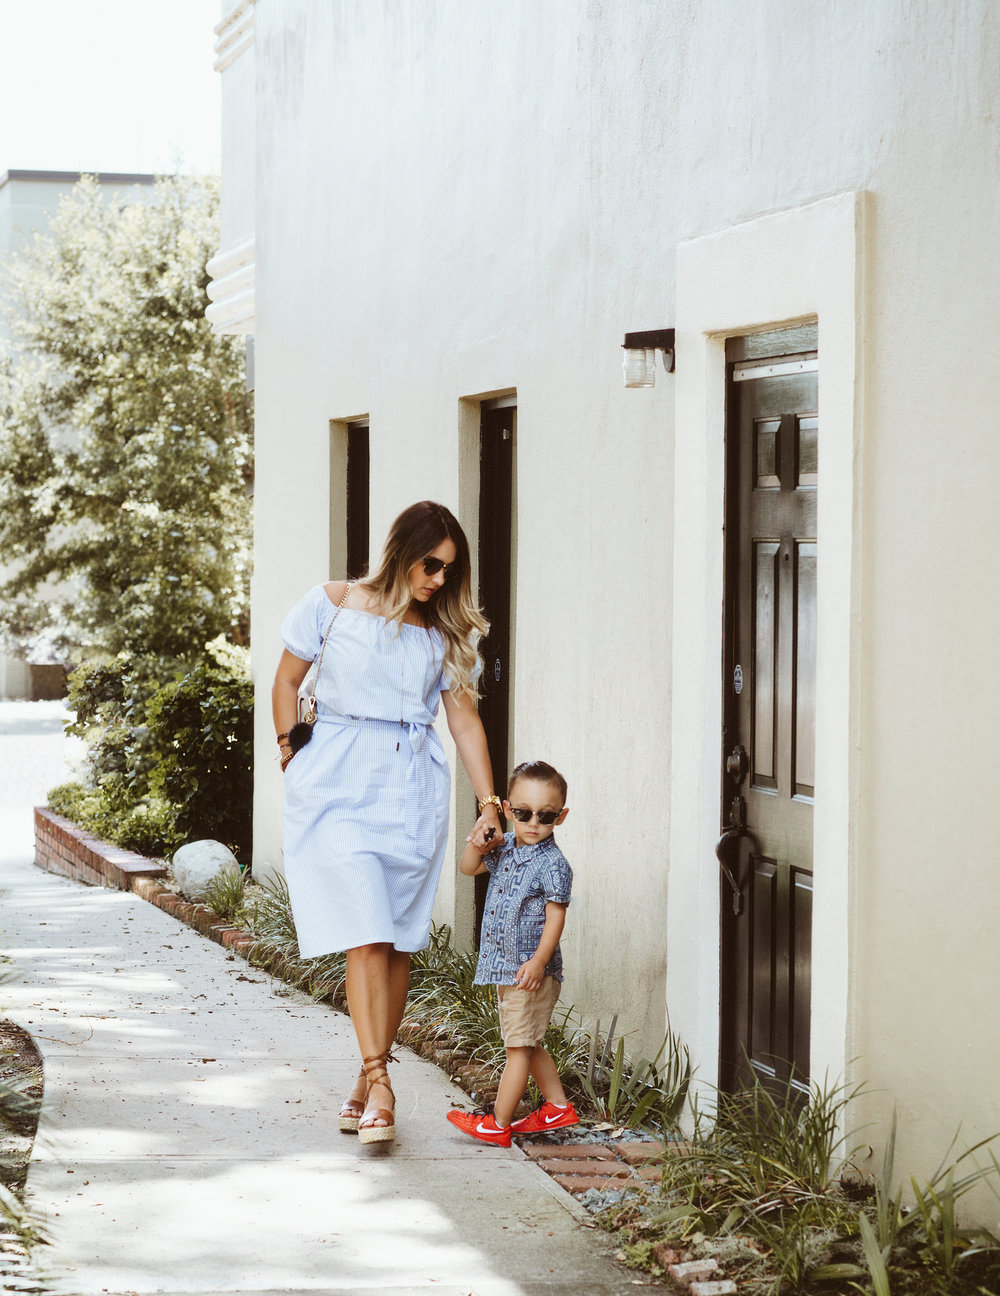 mommy and me | Orlando fashion blogger | Vanessa Boy | vanessaboy.com